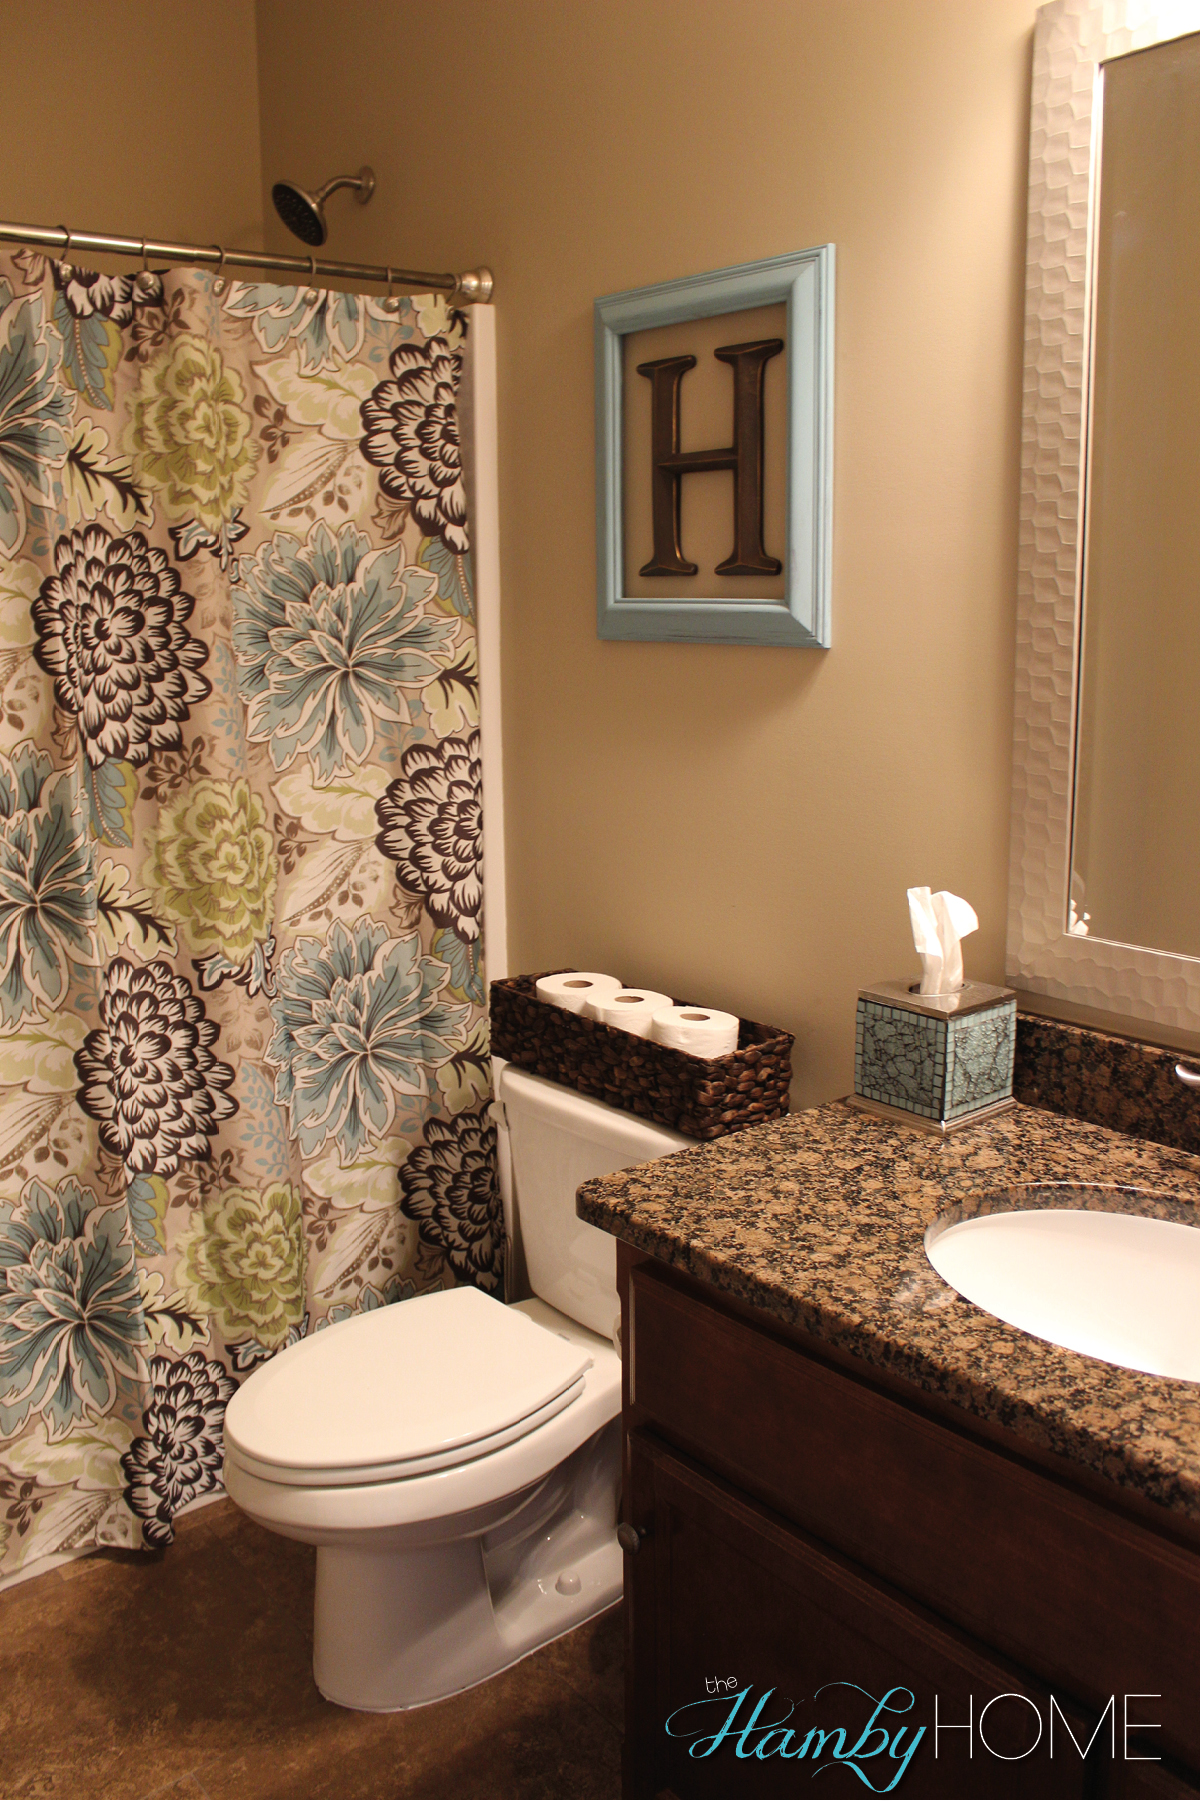 Tgif house tour guest bathroom the hamby home for Bathroom decor ideas images